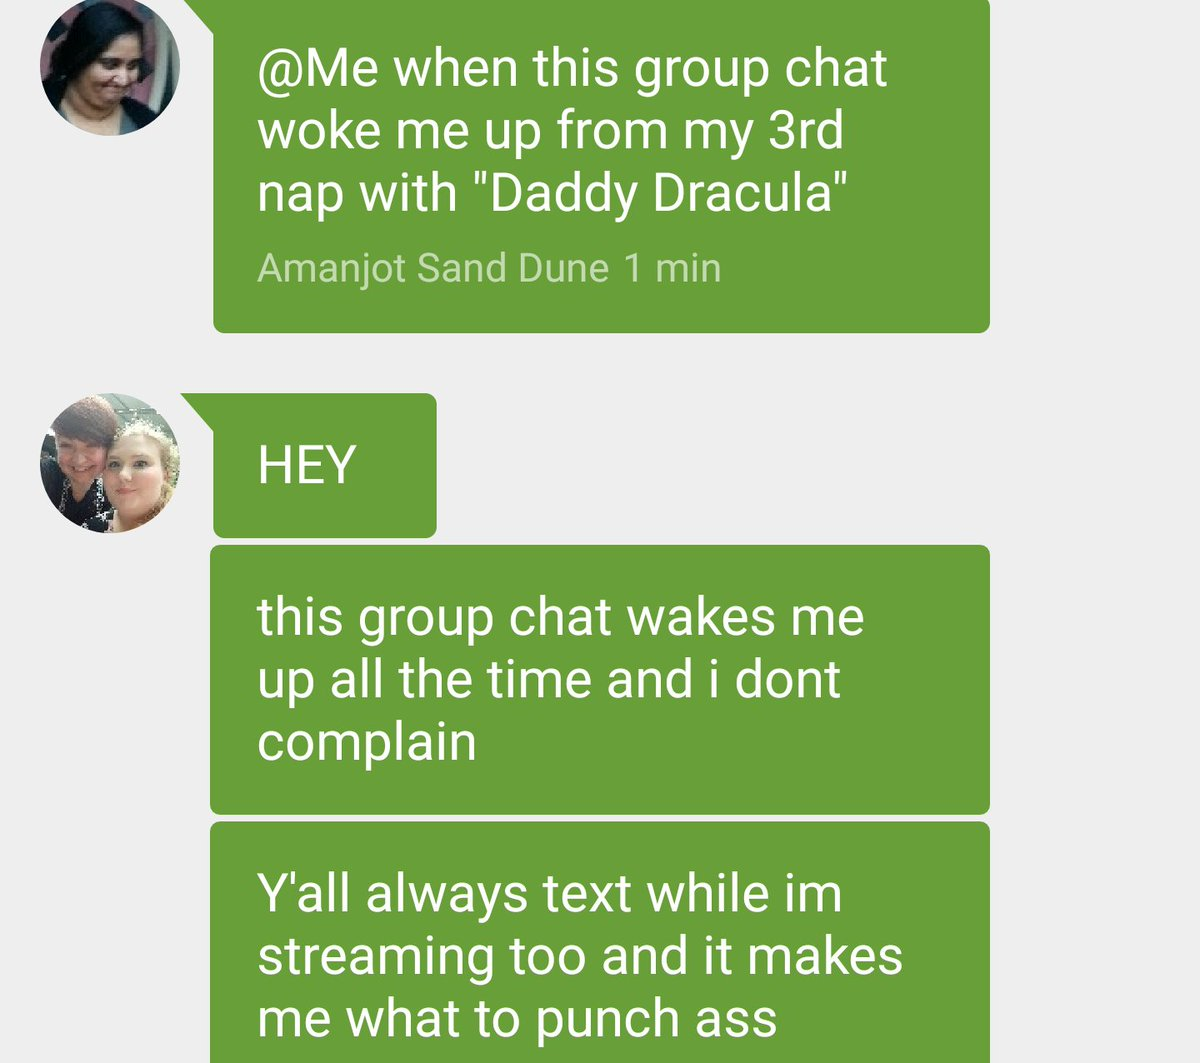 Continuation of The Cursed Group Chat